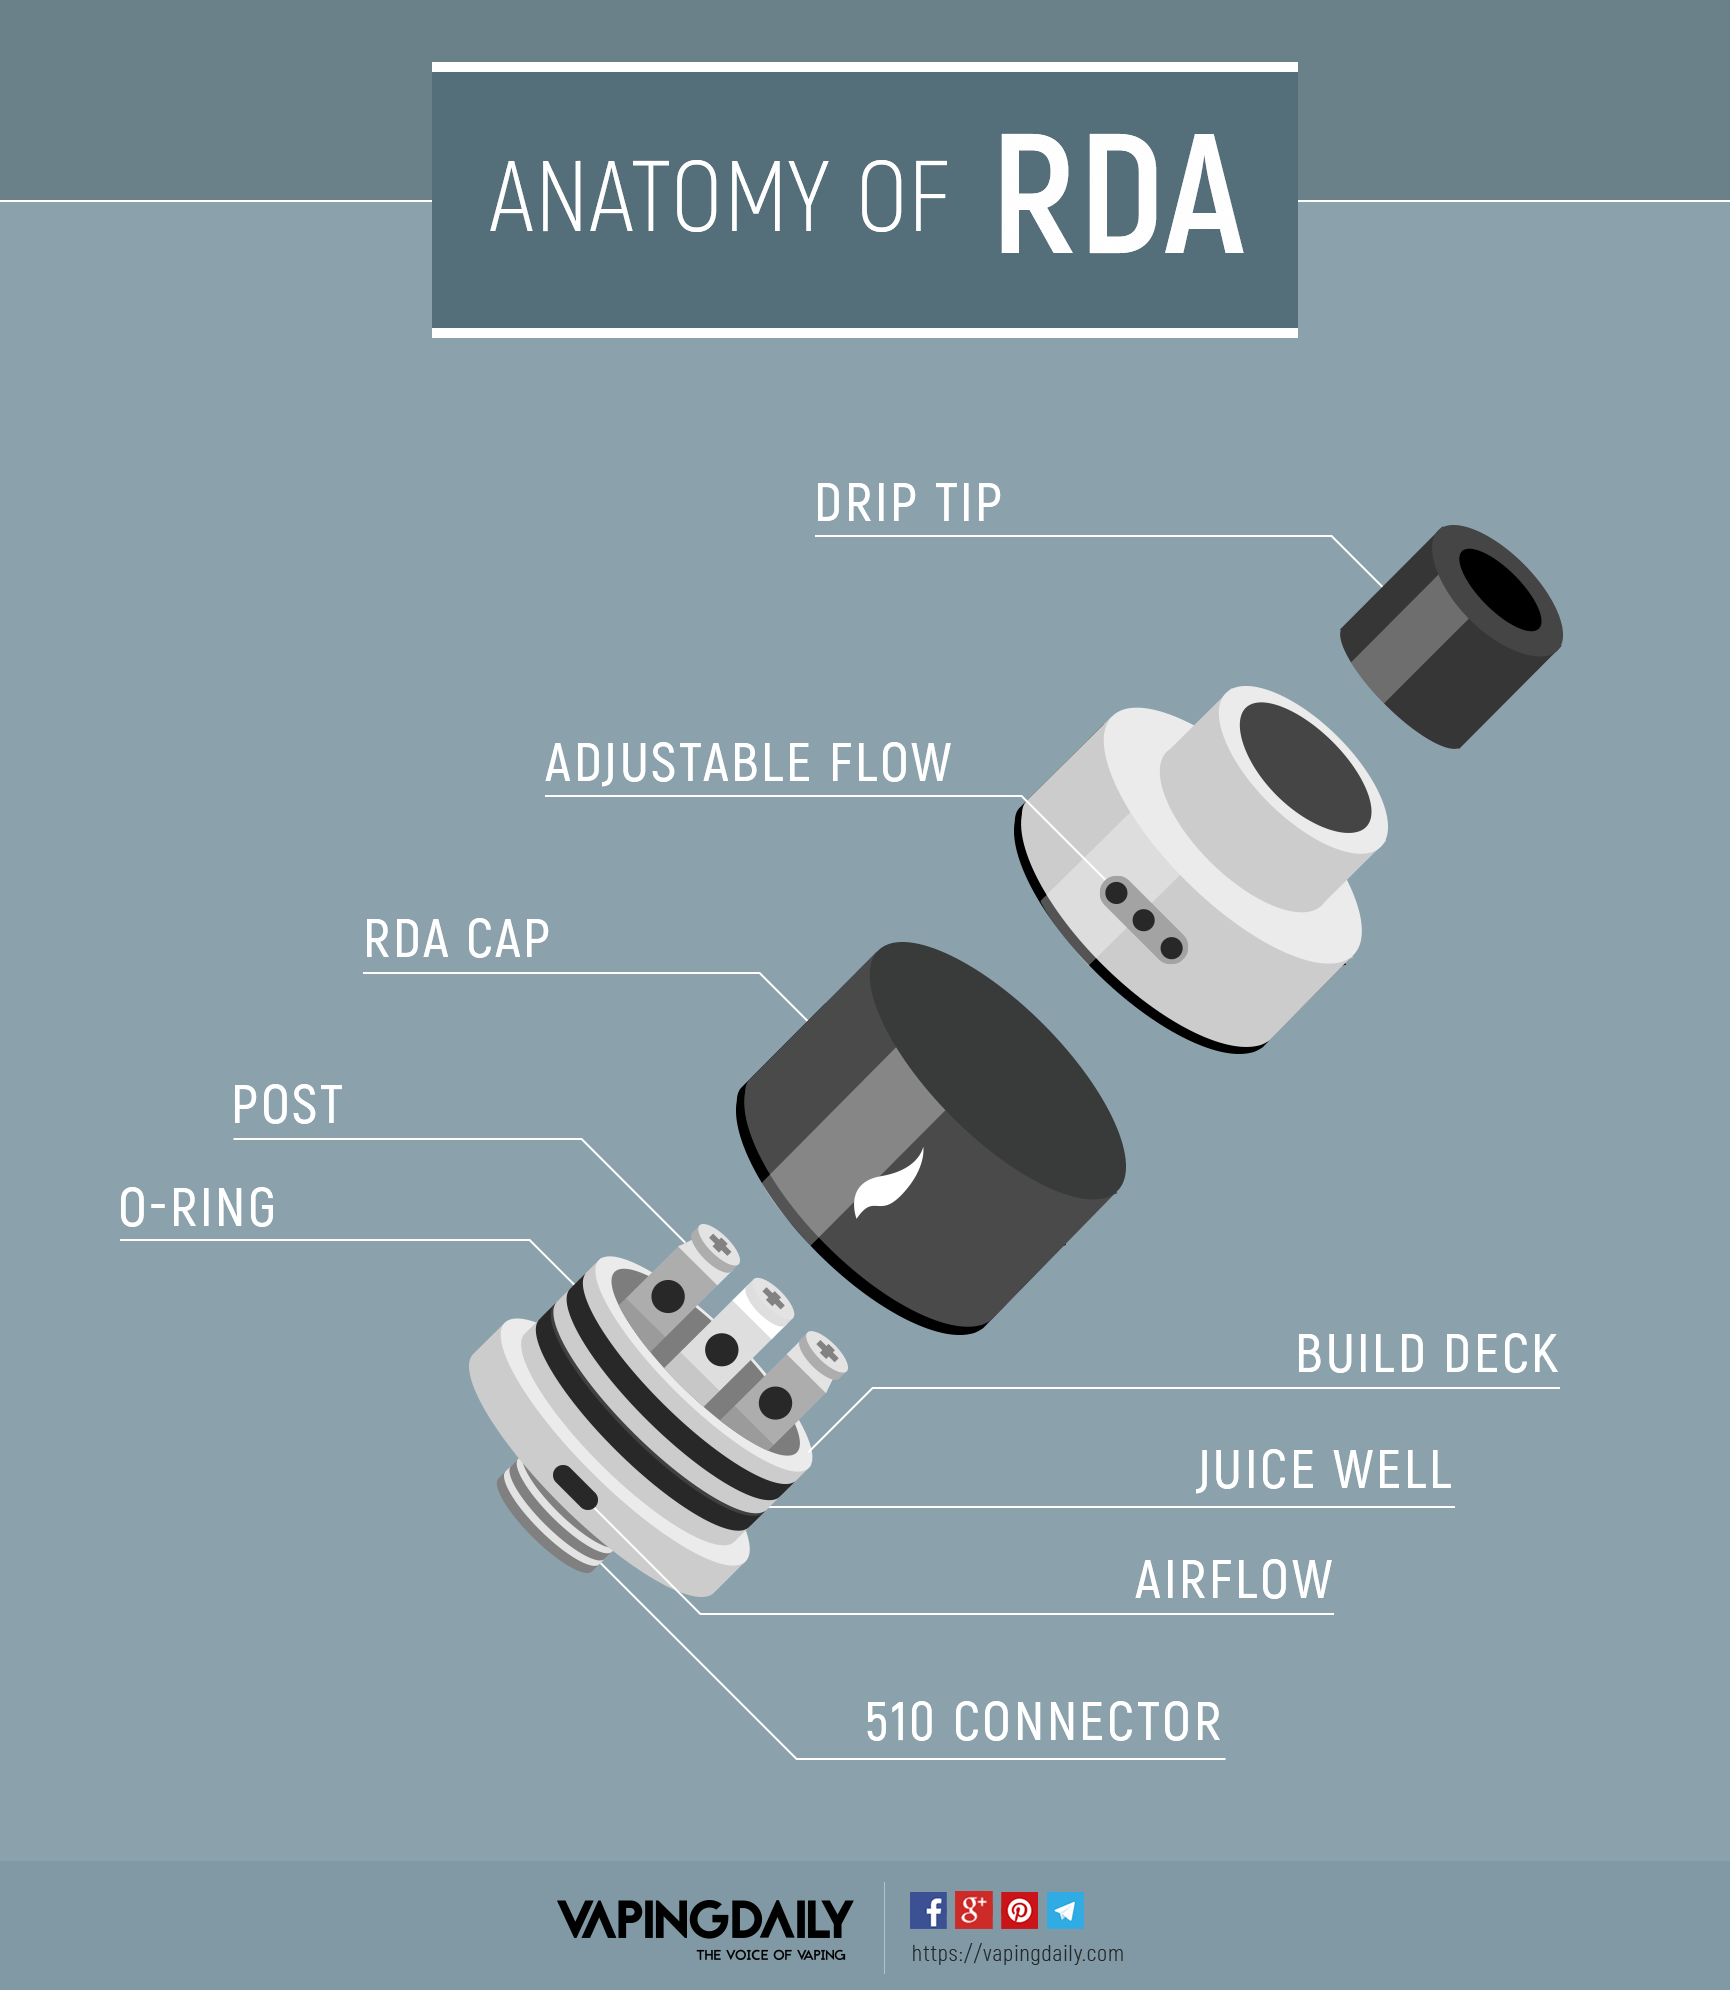 Anatomy of RDA Tank - Infographic